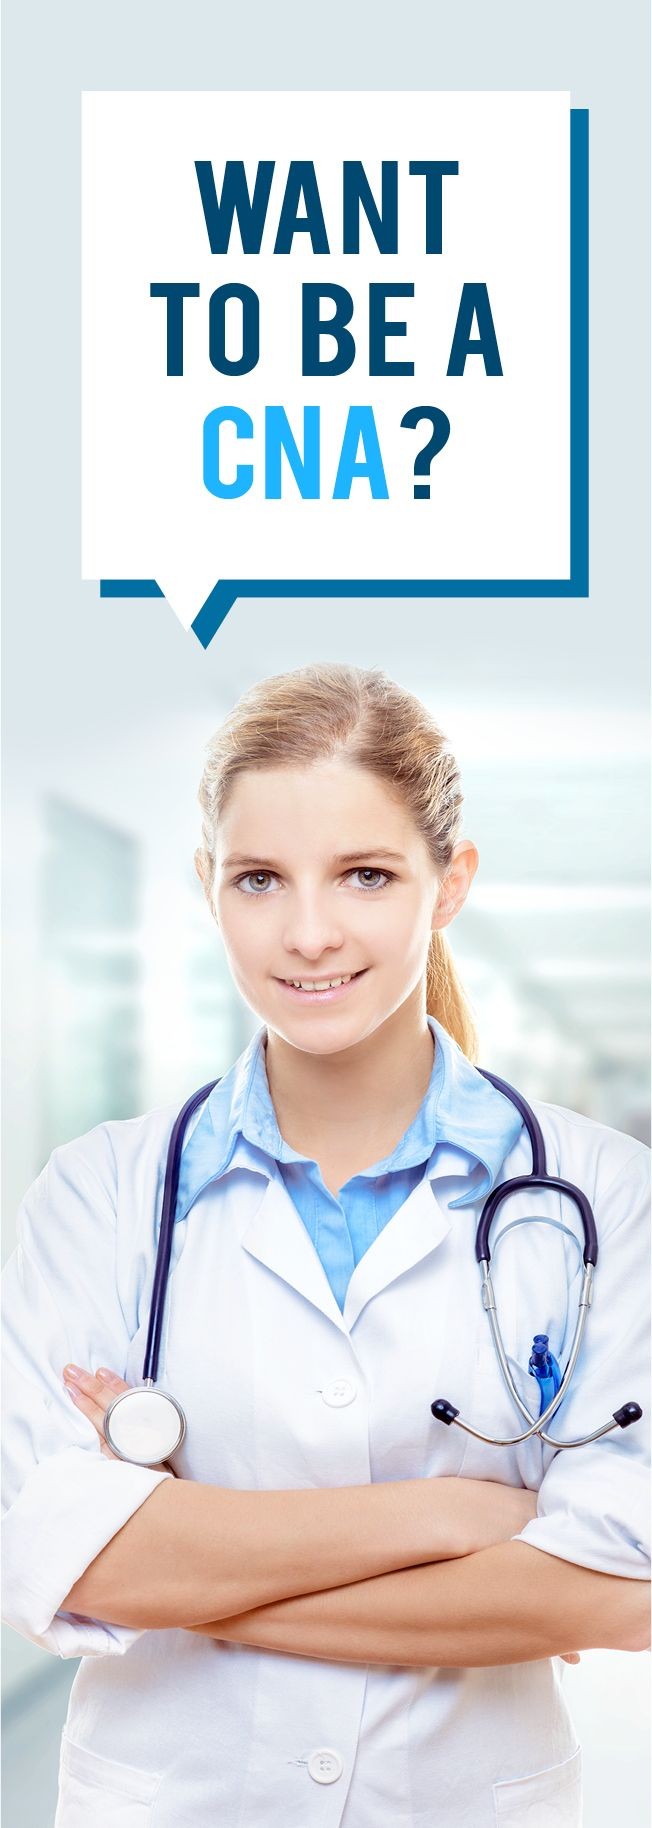 Best 25 cna programs ideas on pinterest certified nurse cna customize your search for part time or full time classes and apply in less than start your cna certification today xflitez Choice Image